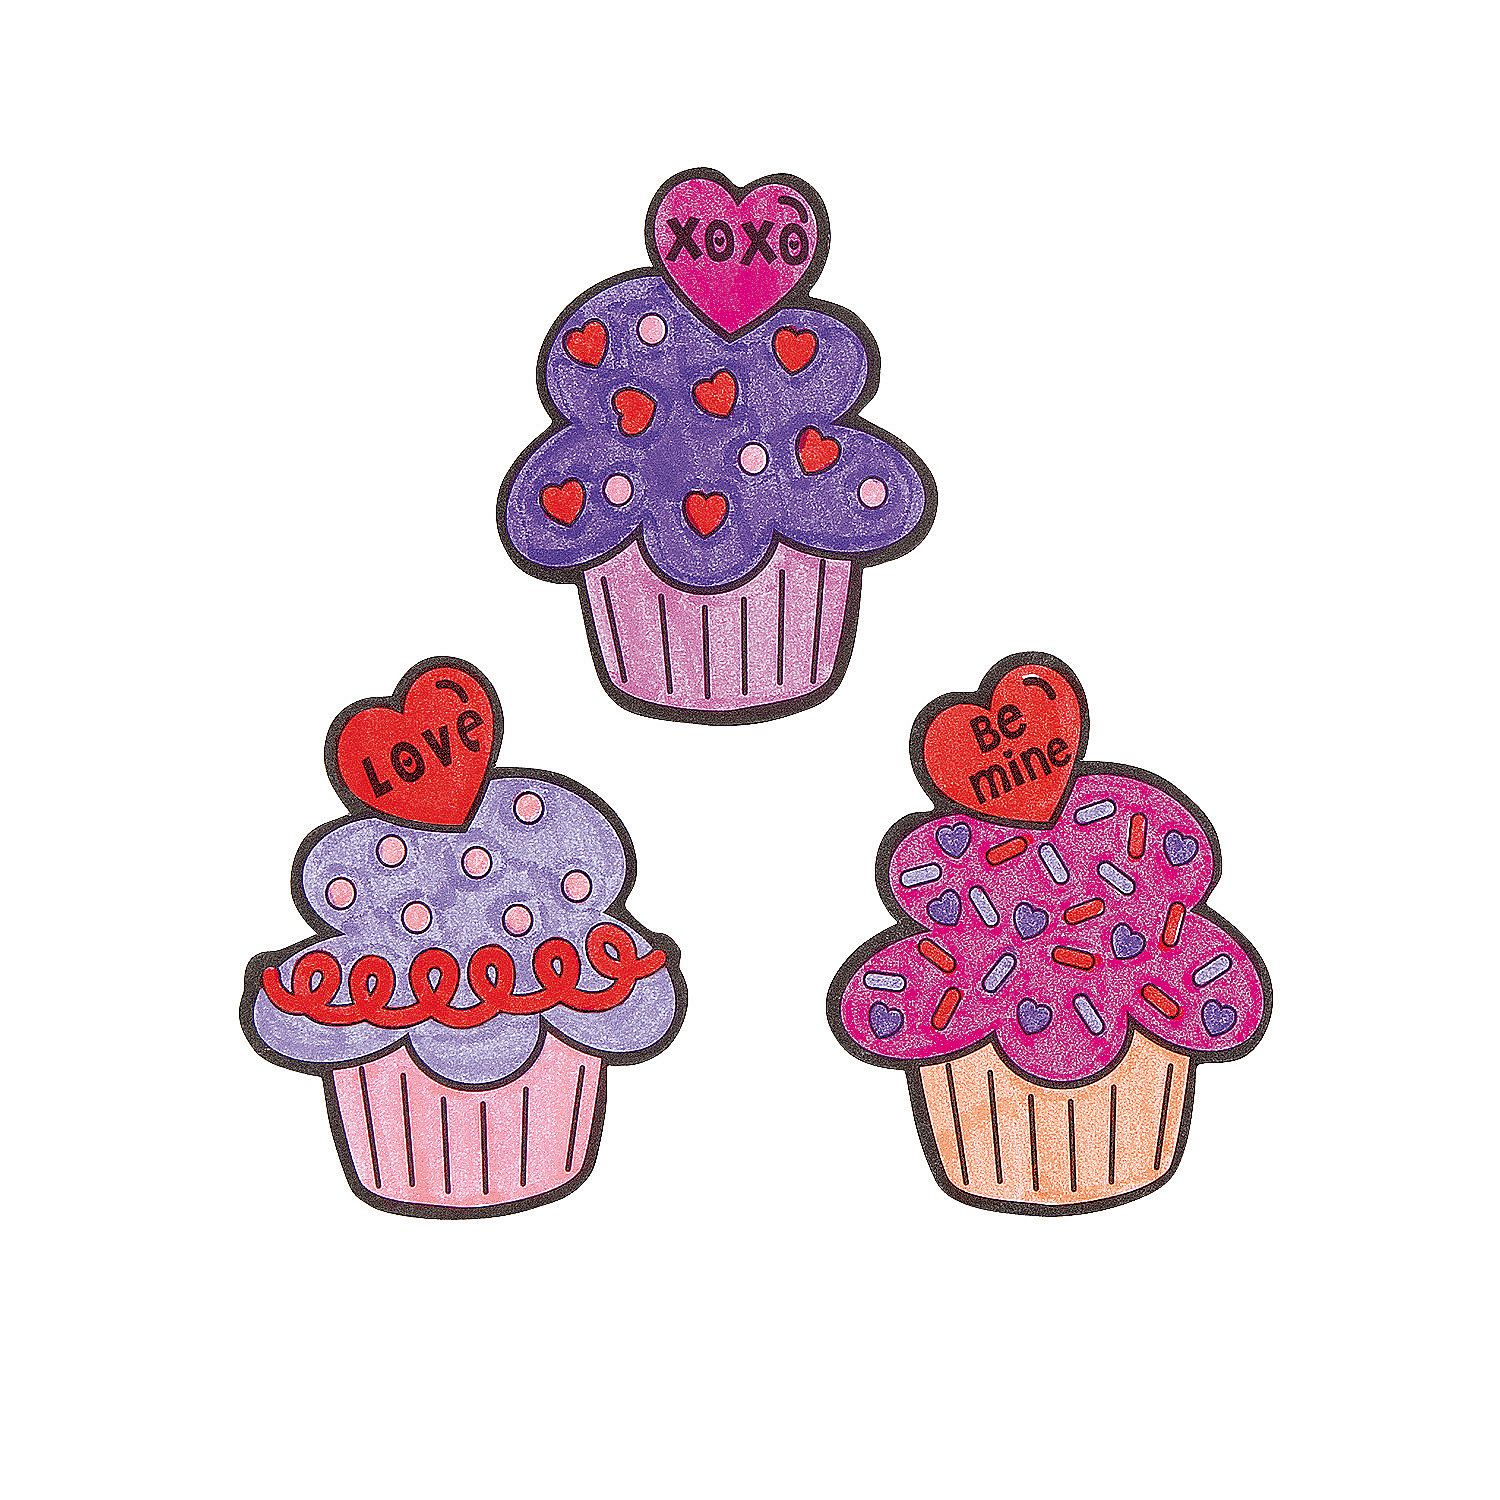 Color+Your+Own+Valentine+Cupcake+Magnets+-+OrientalTrading.com  valentines craft at your party.